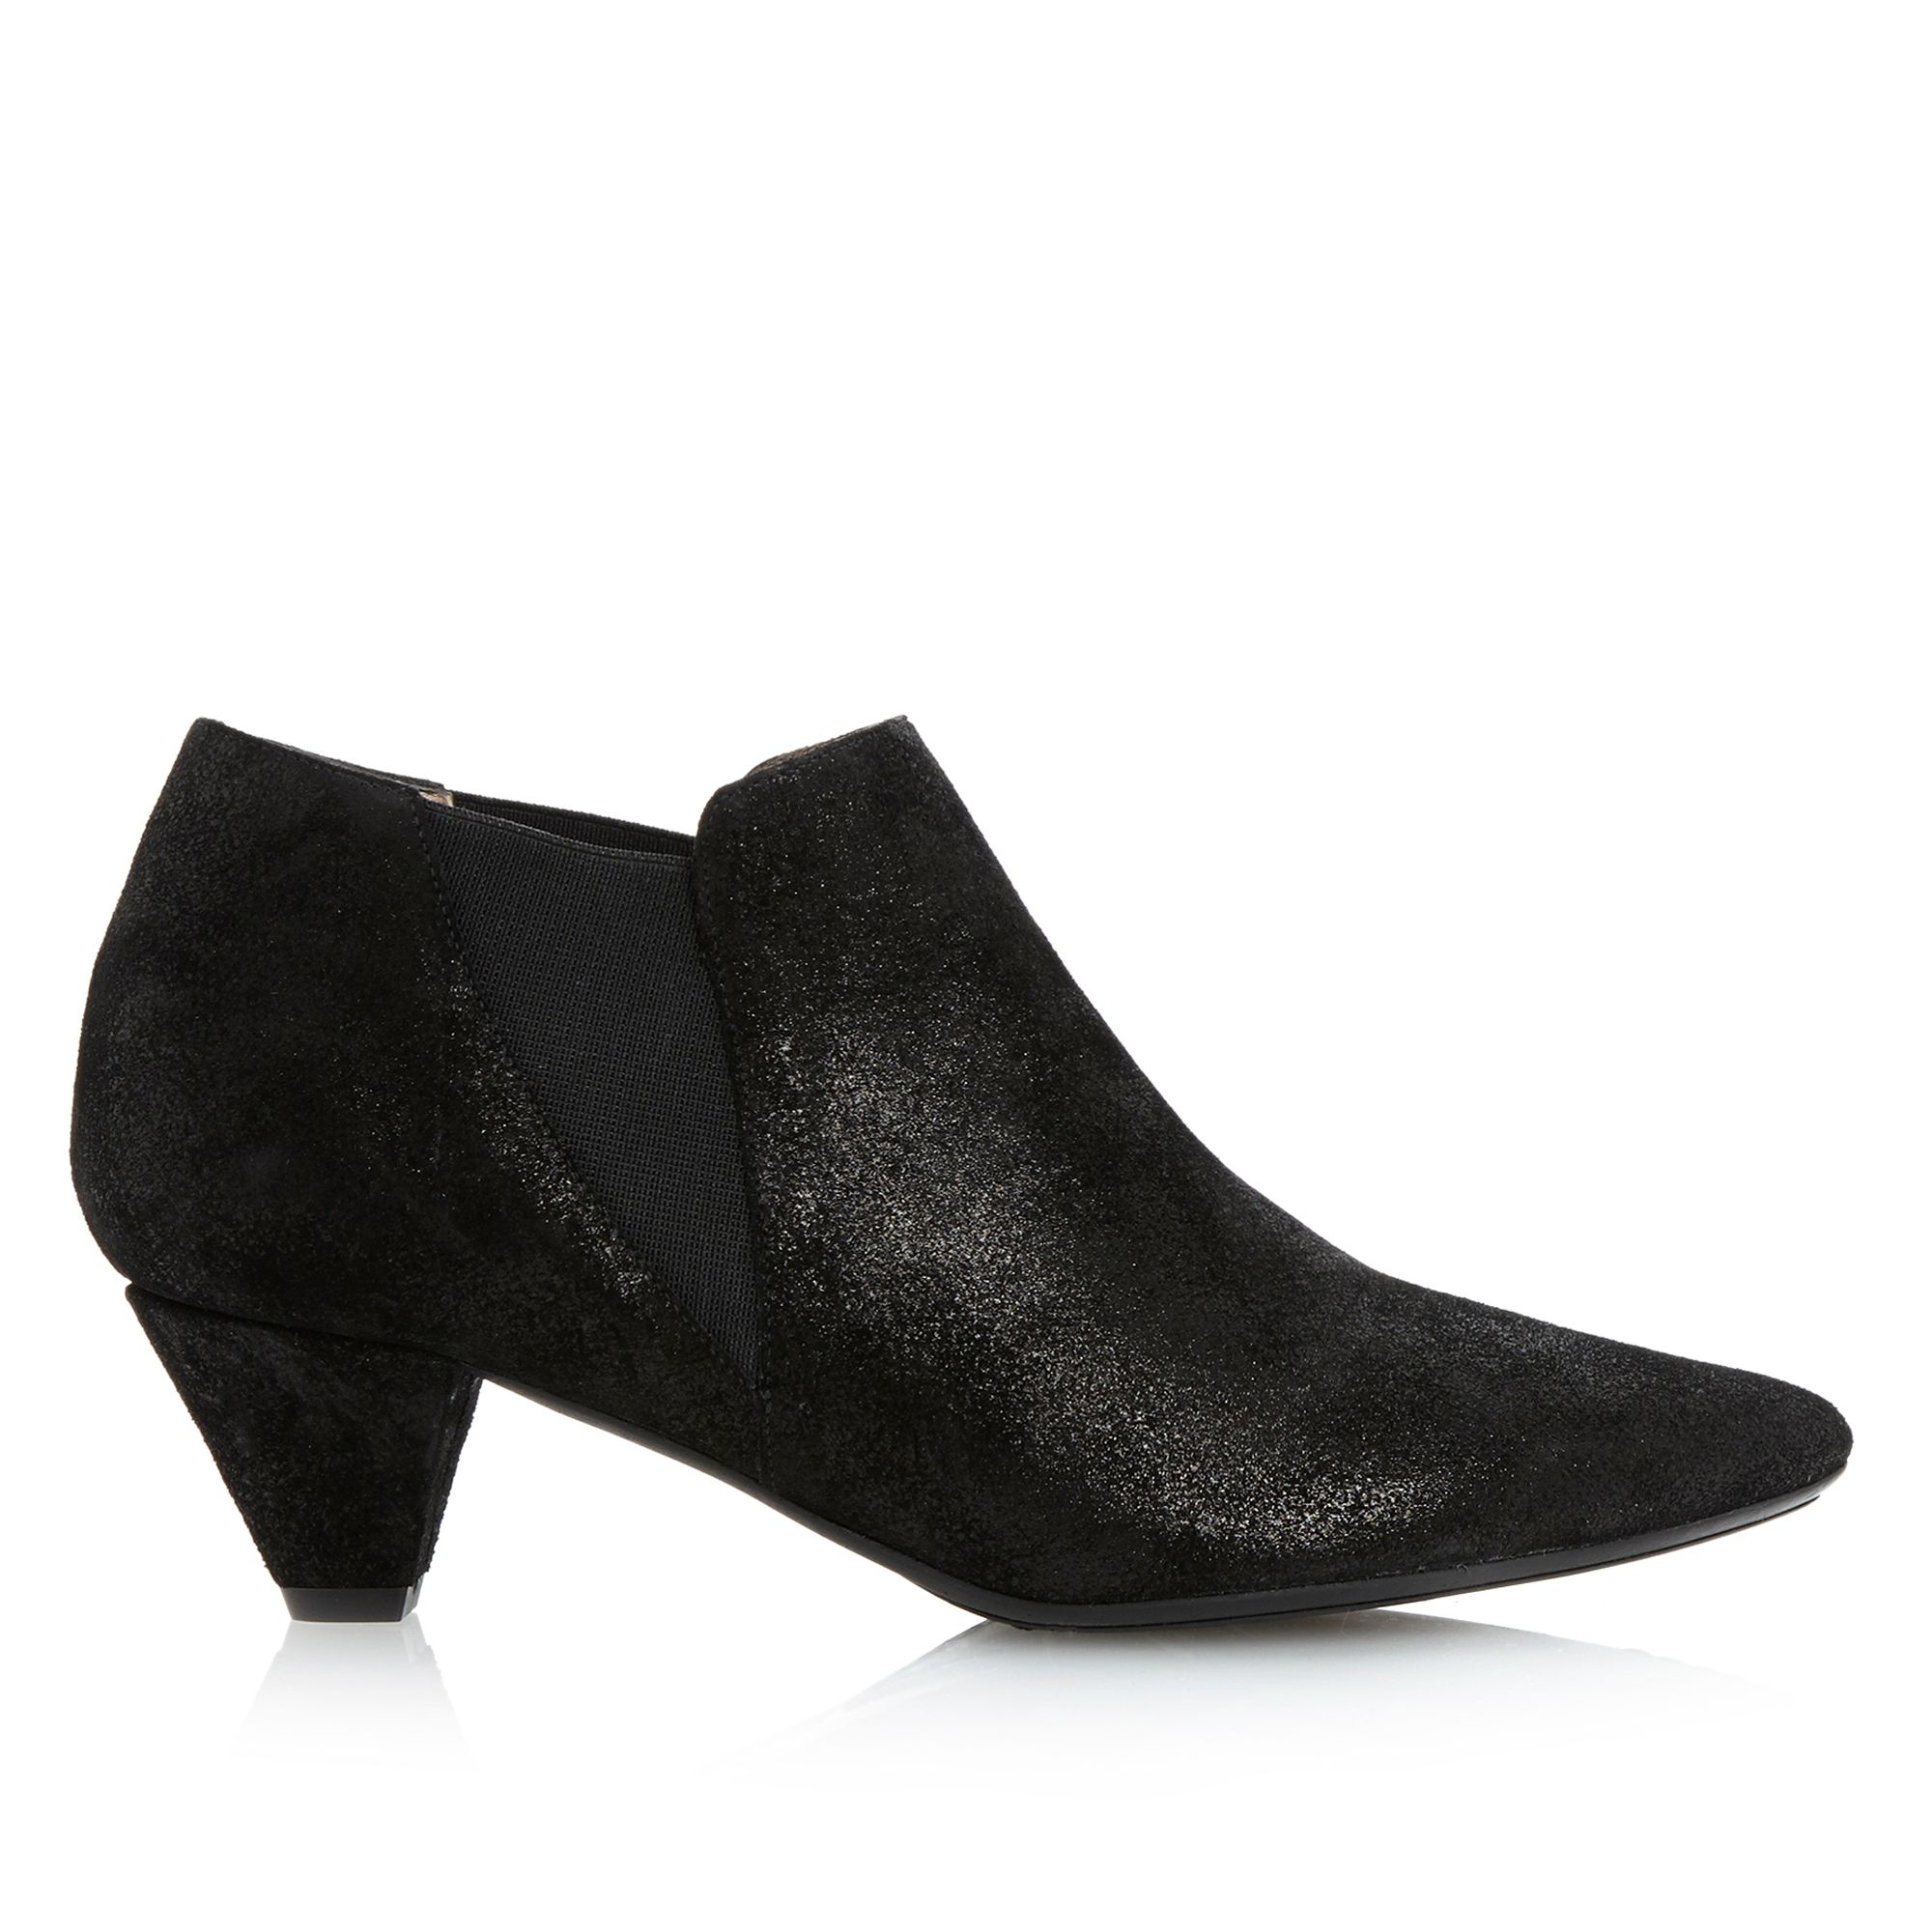 Dune black Saxe Pointed Kitten Heel Ankle Shoe Boots in Black | Lyst